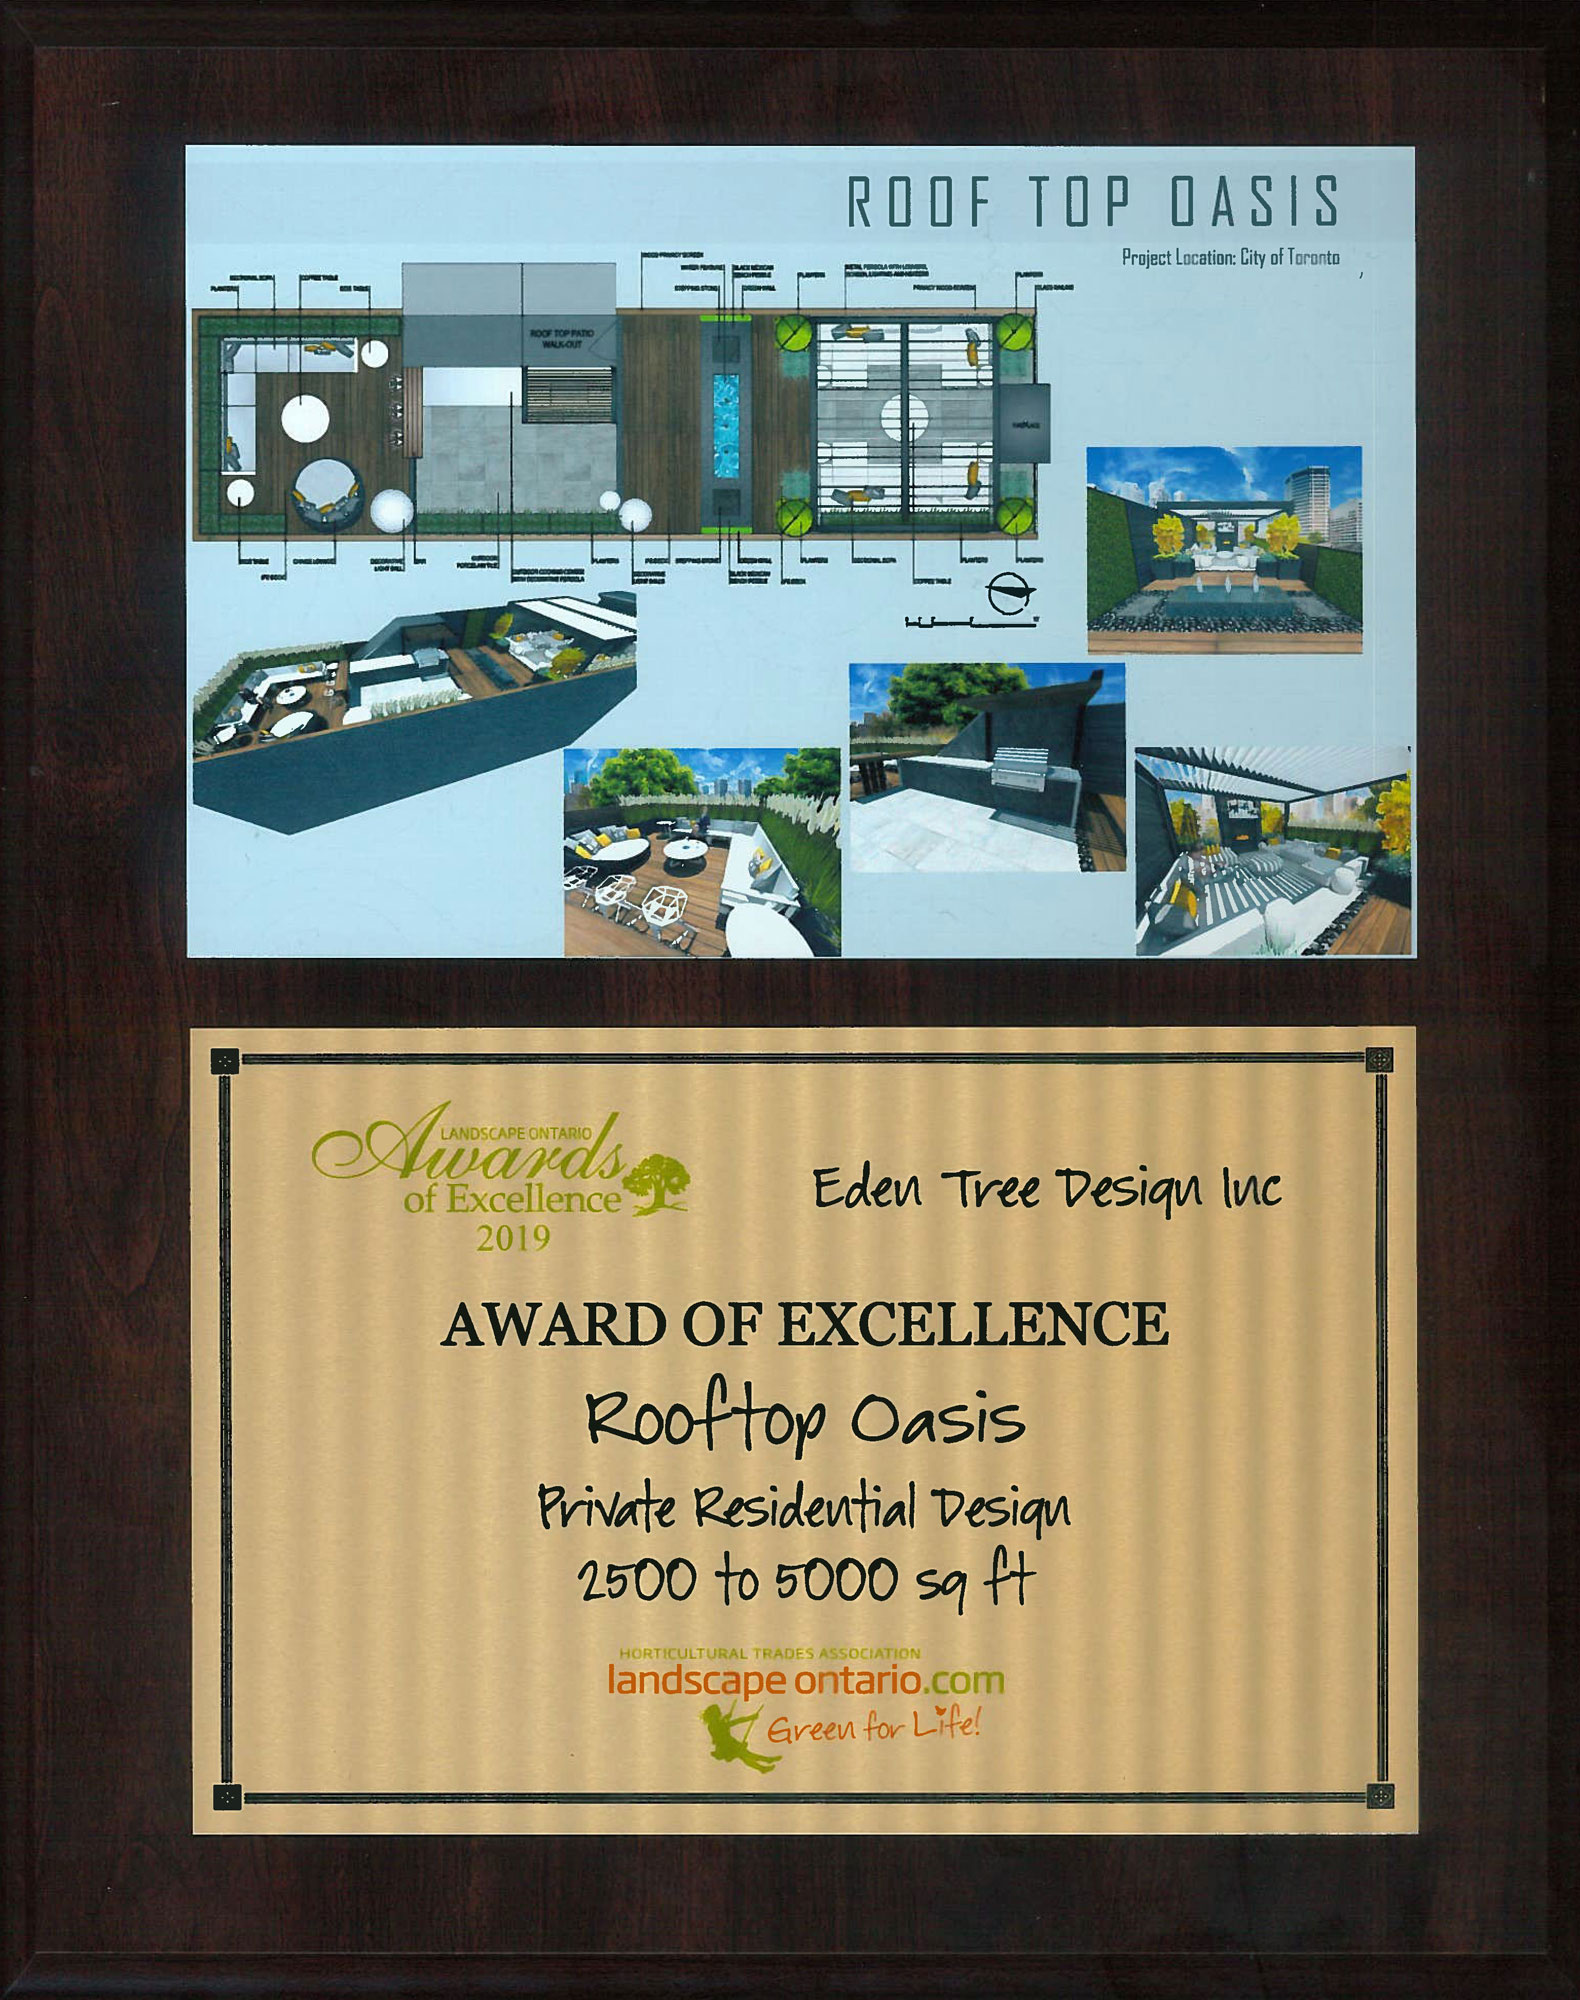 Landscape Ontario Award of Excellence 2019Private Residential Design 2500 to 5000 sq. ft. - (see Roof Top Oasis)